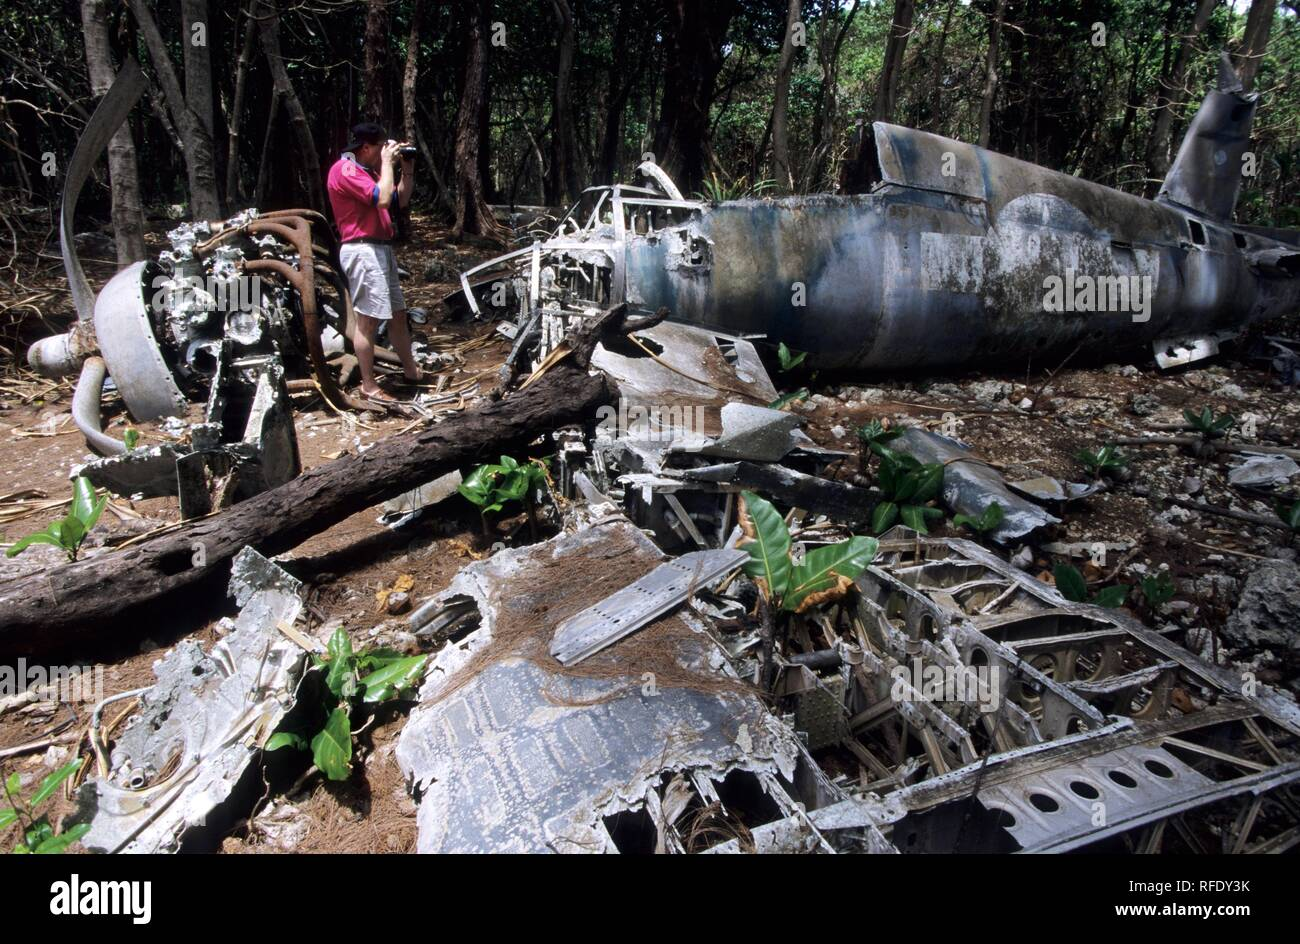 The wreck of a shot down military plane of World War 2, Palau, Micronesia Stock Photo